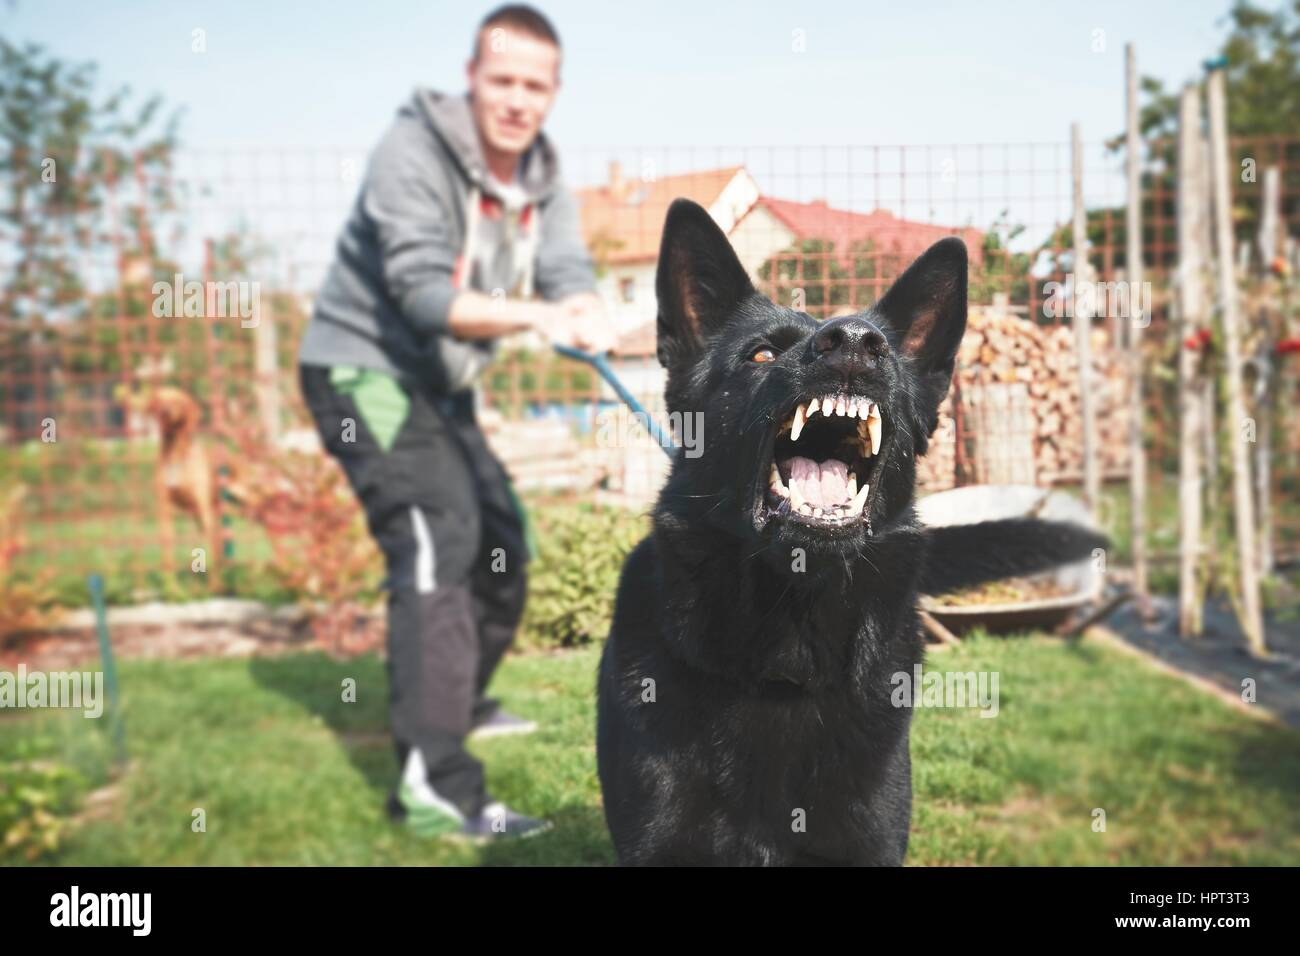 Aggressive dog is barking. Young man with angry black dog on the leash. - Stock Image